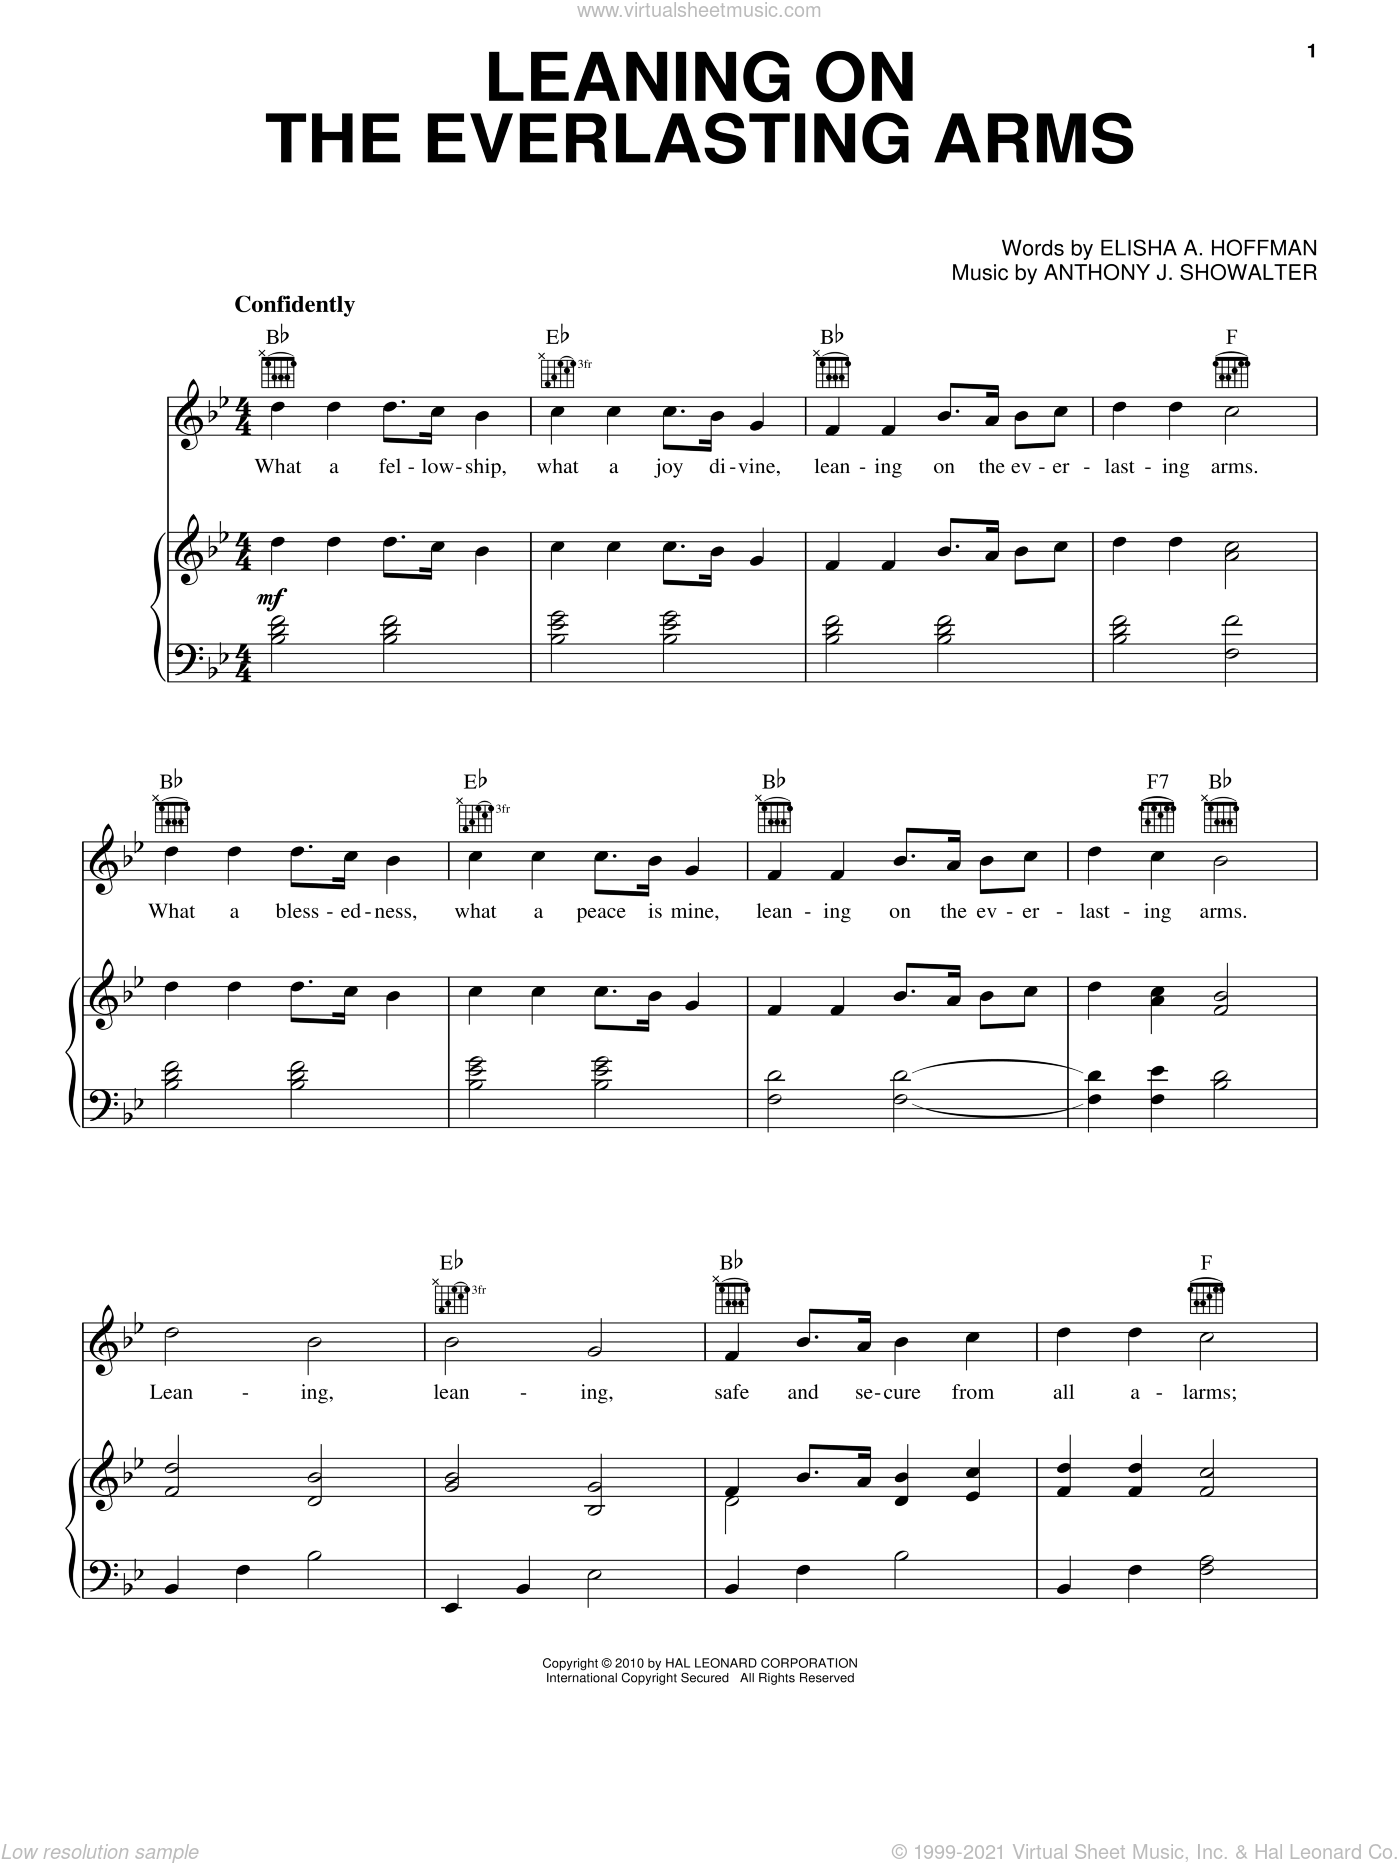 Leaning On The Everlasting Arms sheet music for voice, piano or guitar by Elisha A. Hoffman